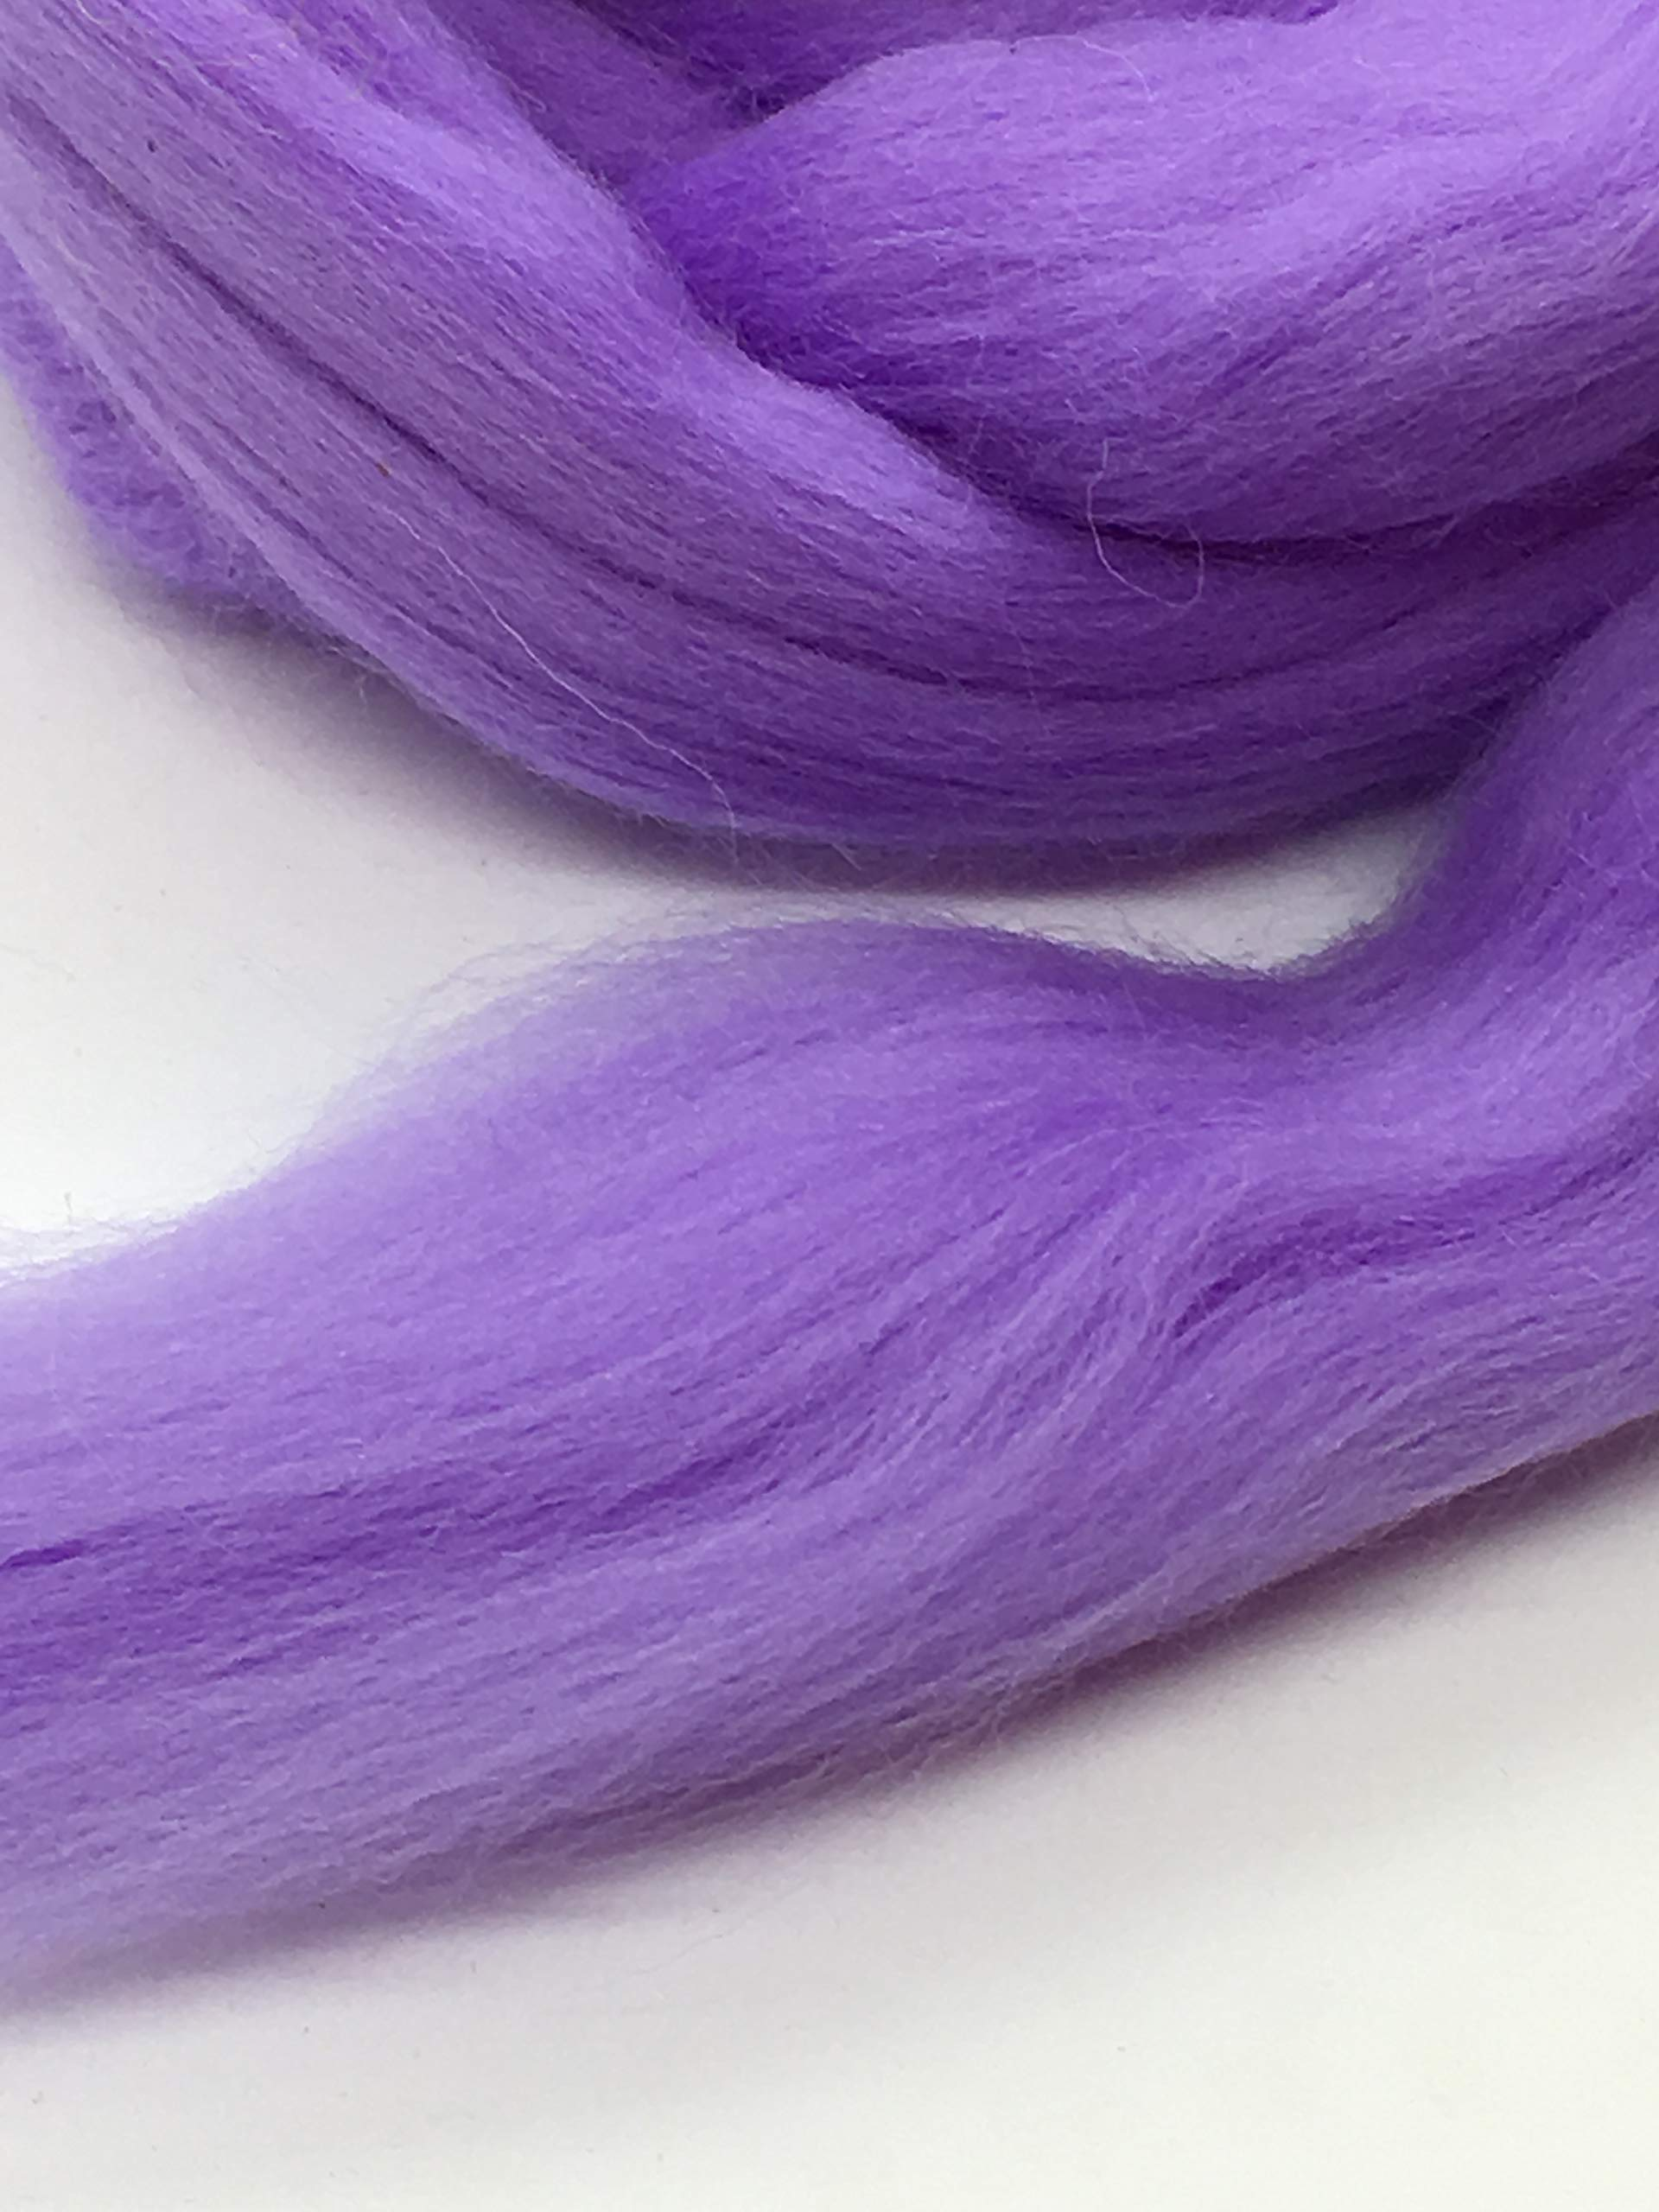 Periwinkle Merino Wool Top Roving Fiber Spinning, Felting Crafts USA (4 pounds) by Shep's Wool (Image #4)